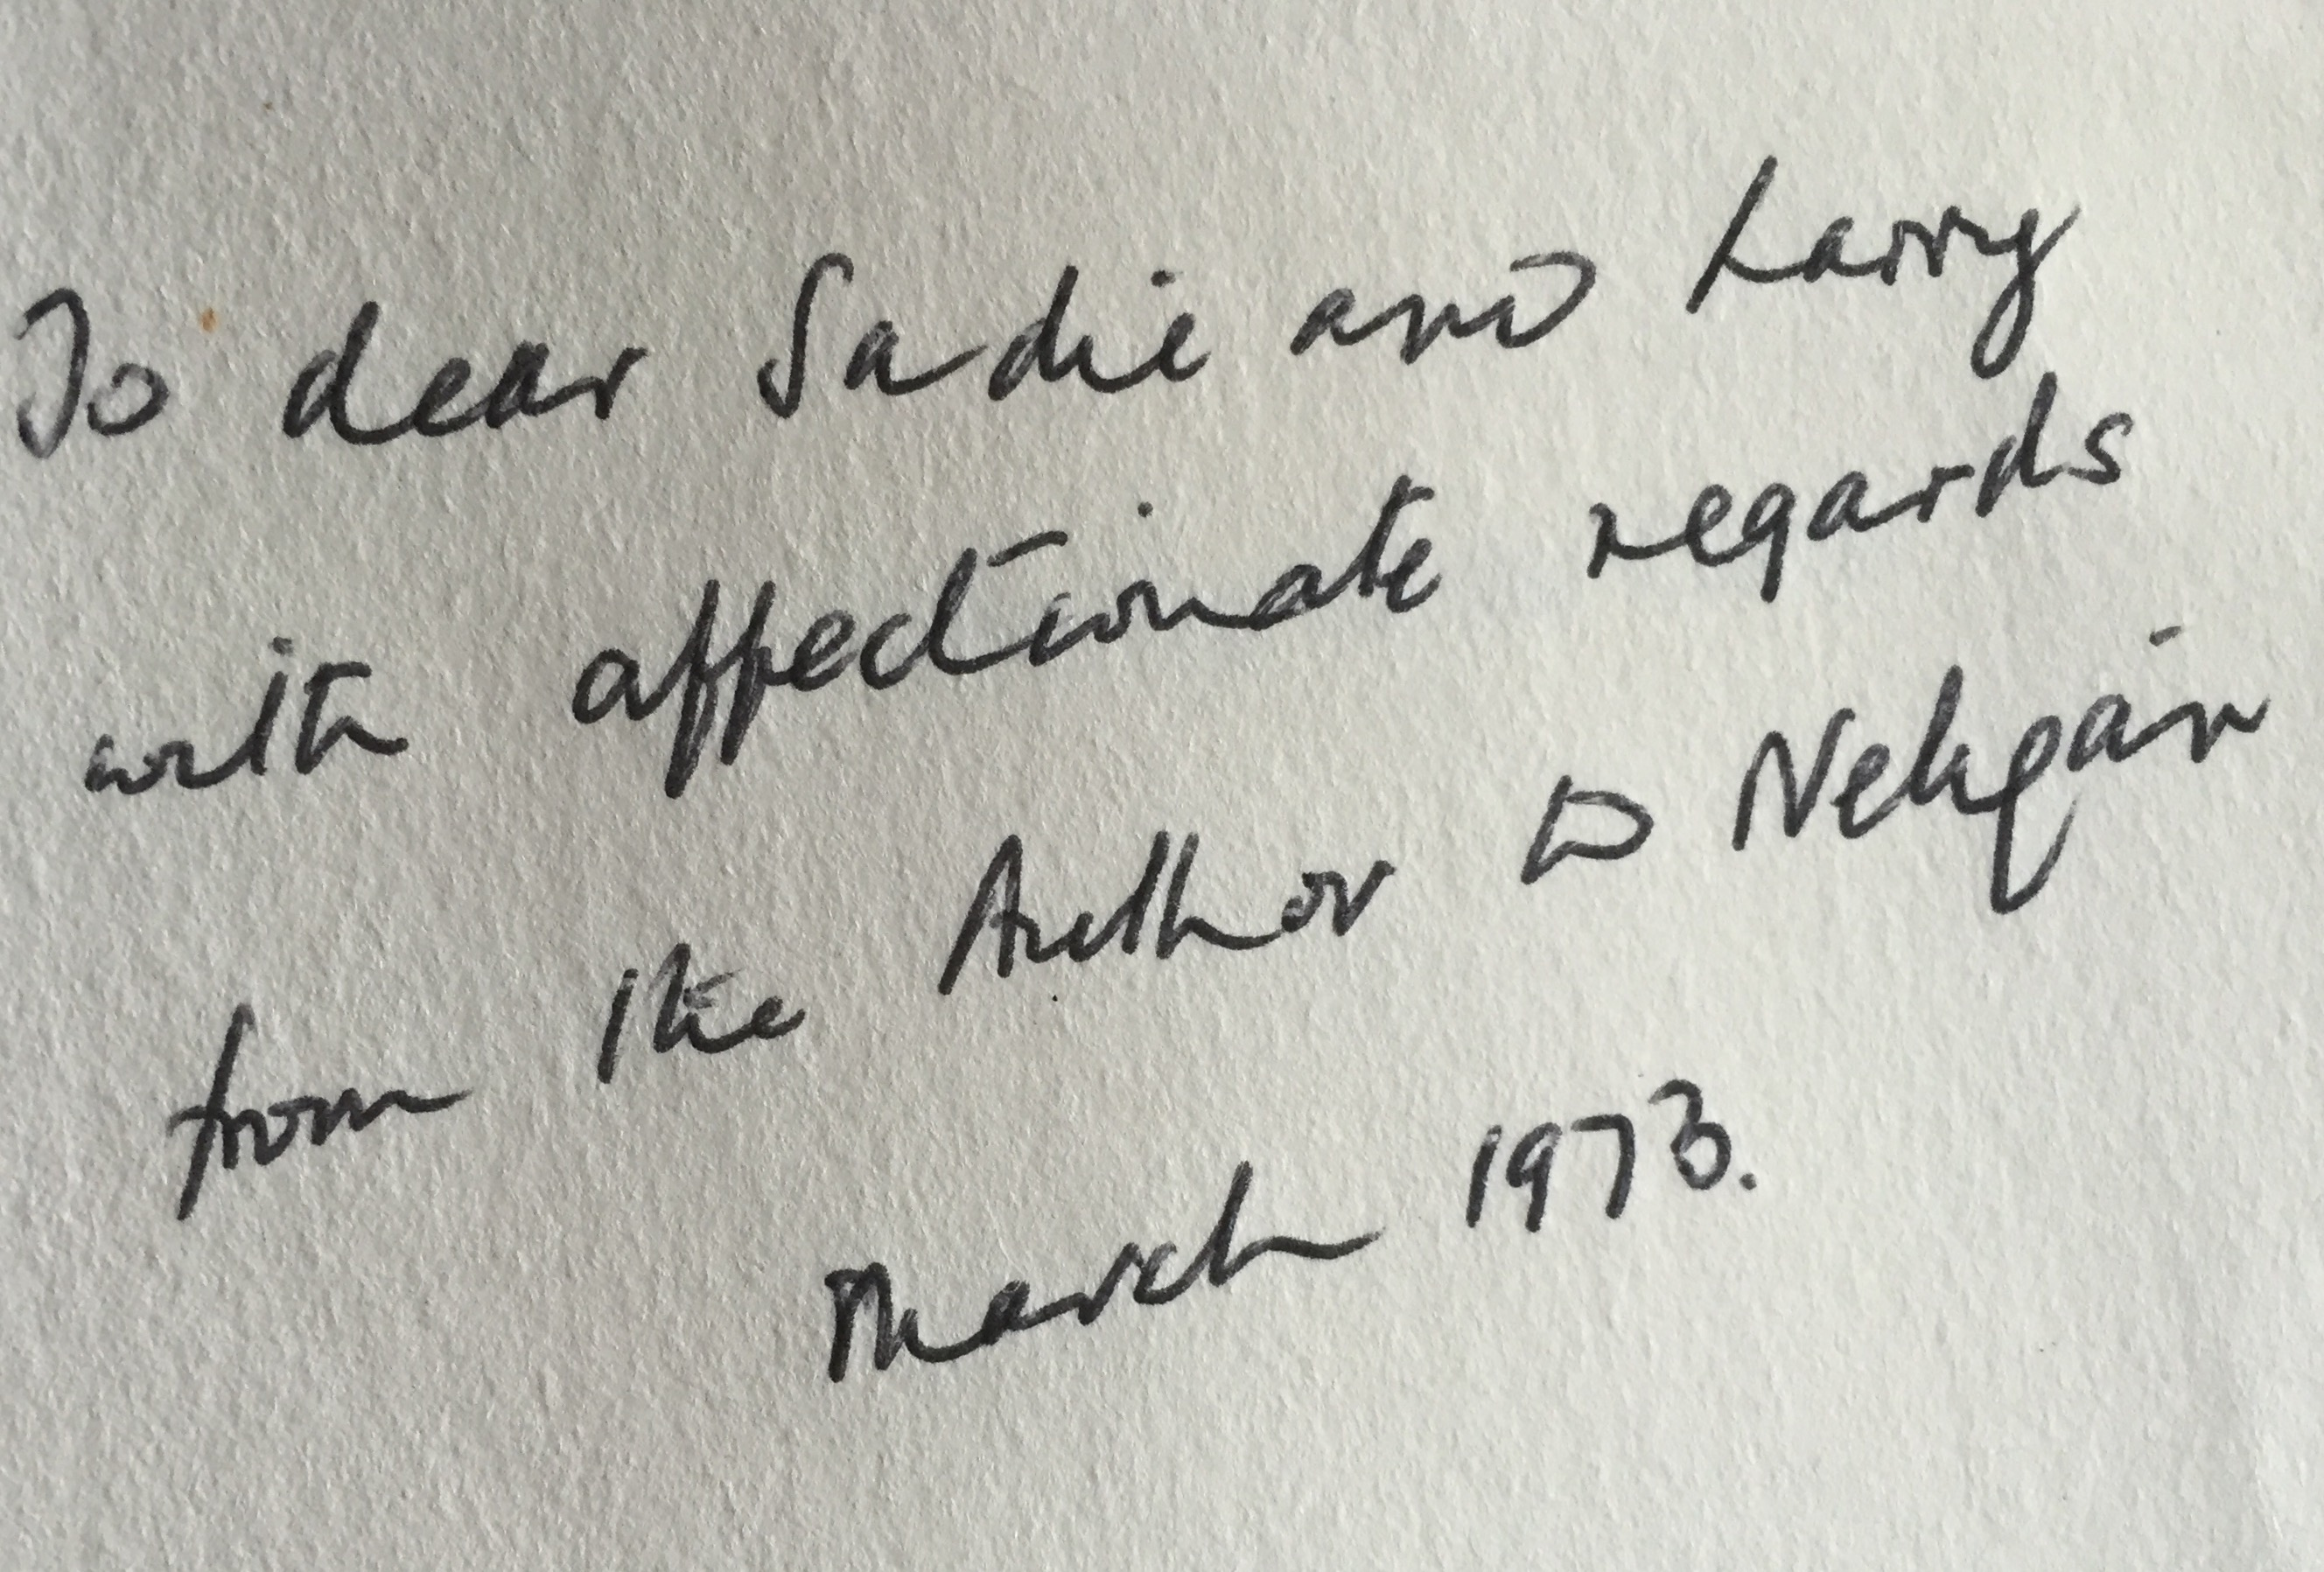 A note showing Nelligan's handwring reads: To dear Sadie and Larry with affectionate regards from the Author D Neligan. March 1973.